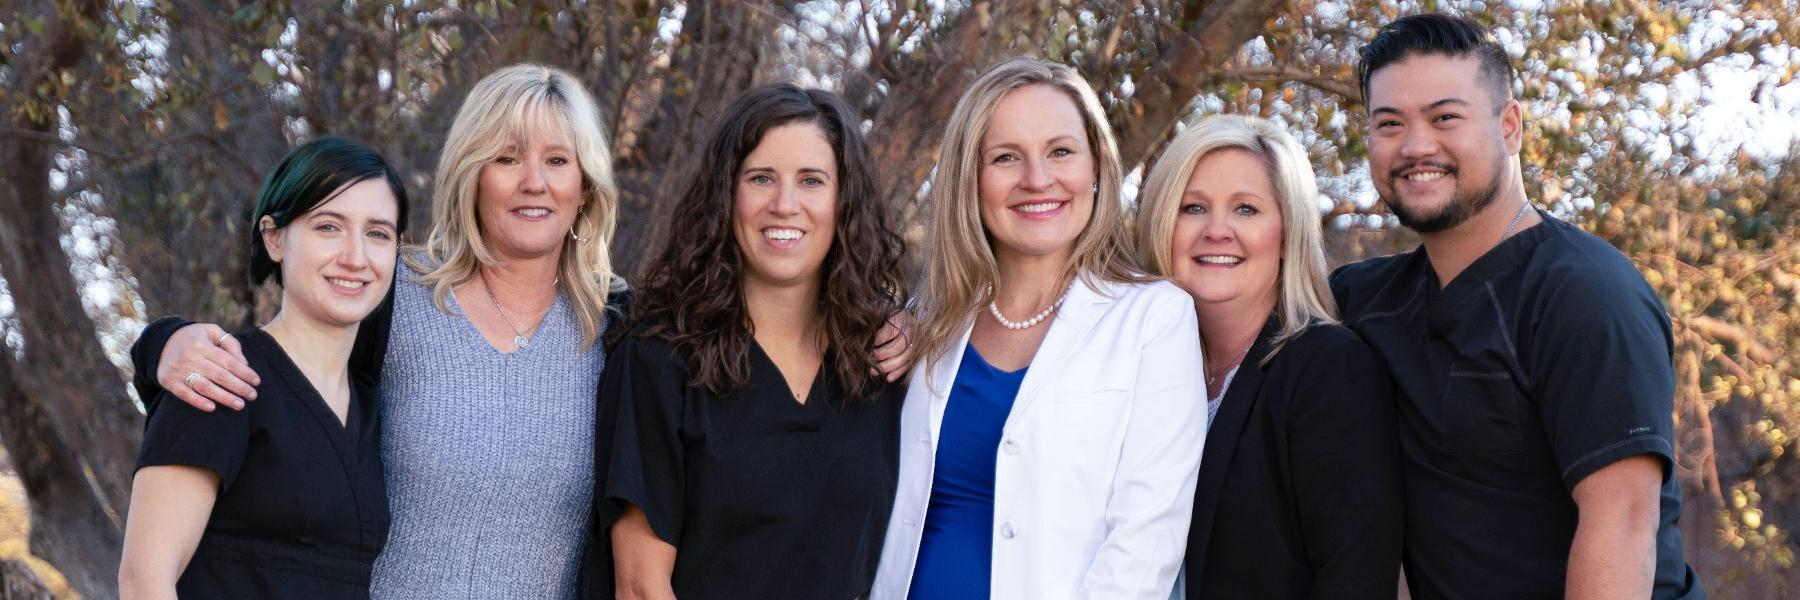 Our team strives to help you feel safe, informed, comfortable, and at home. Together, we have more than 50 years of experience in all aspects of dentistry. All of our employees work together to make your dental visit the best it can possibly be. Getting t